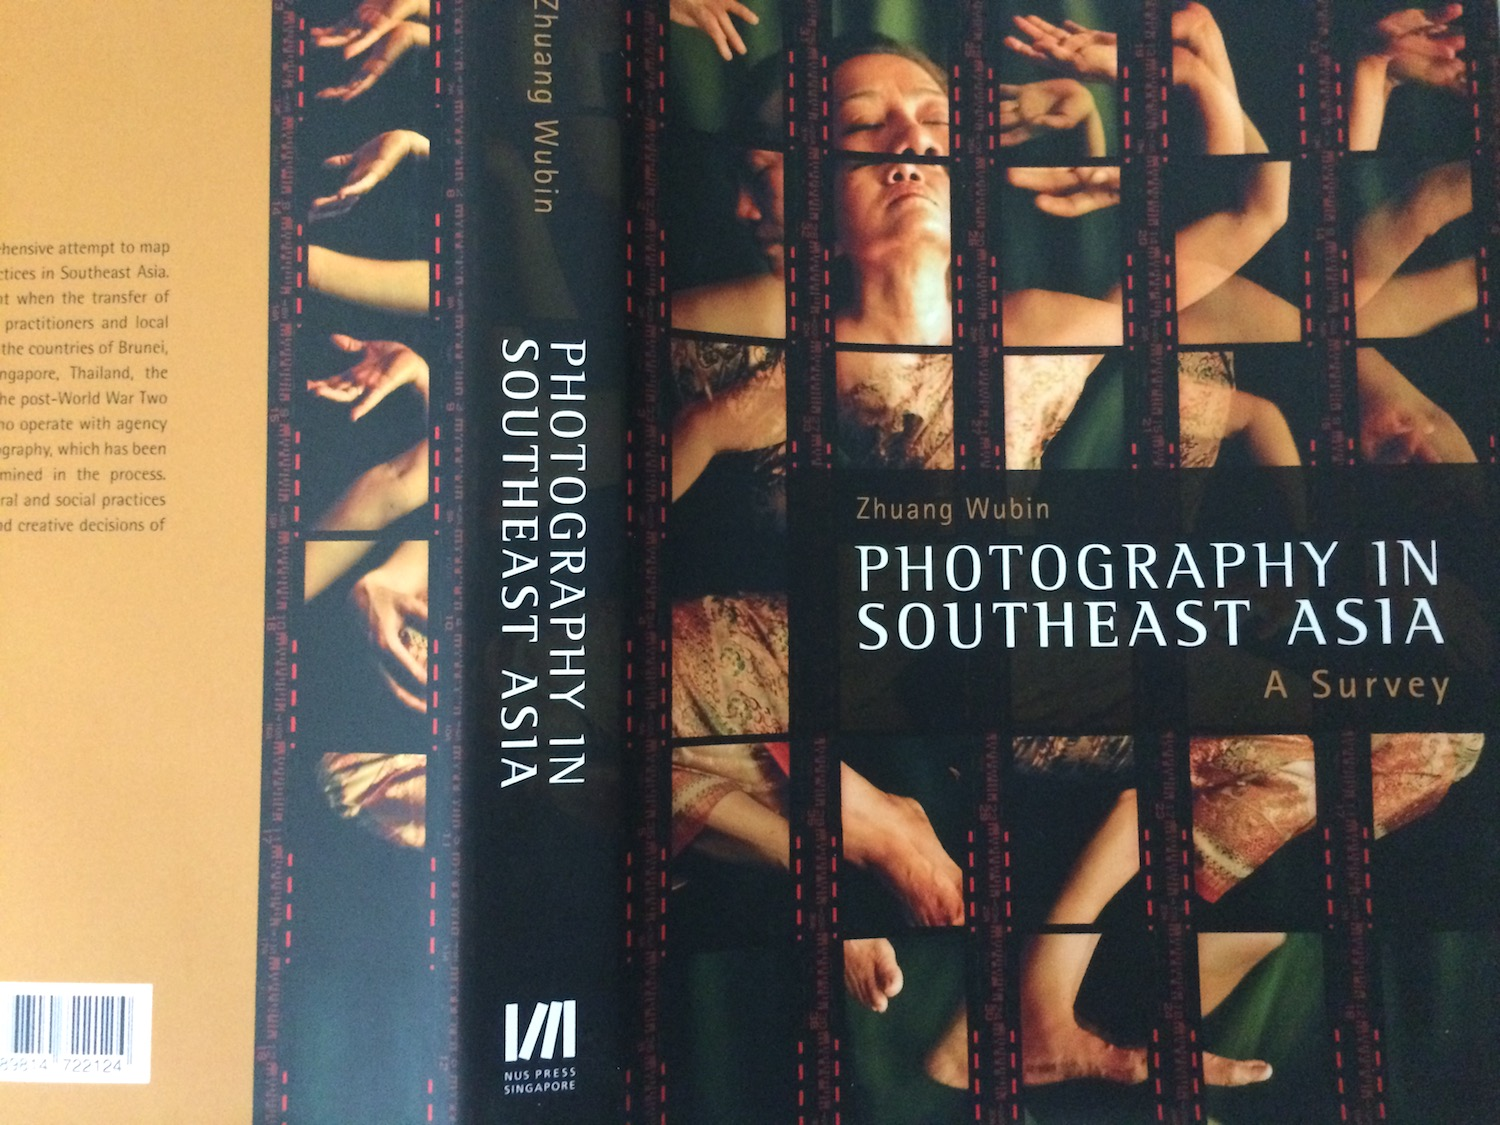 Photography in Southeast Asia - A Survey